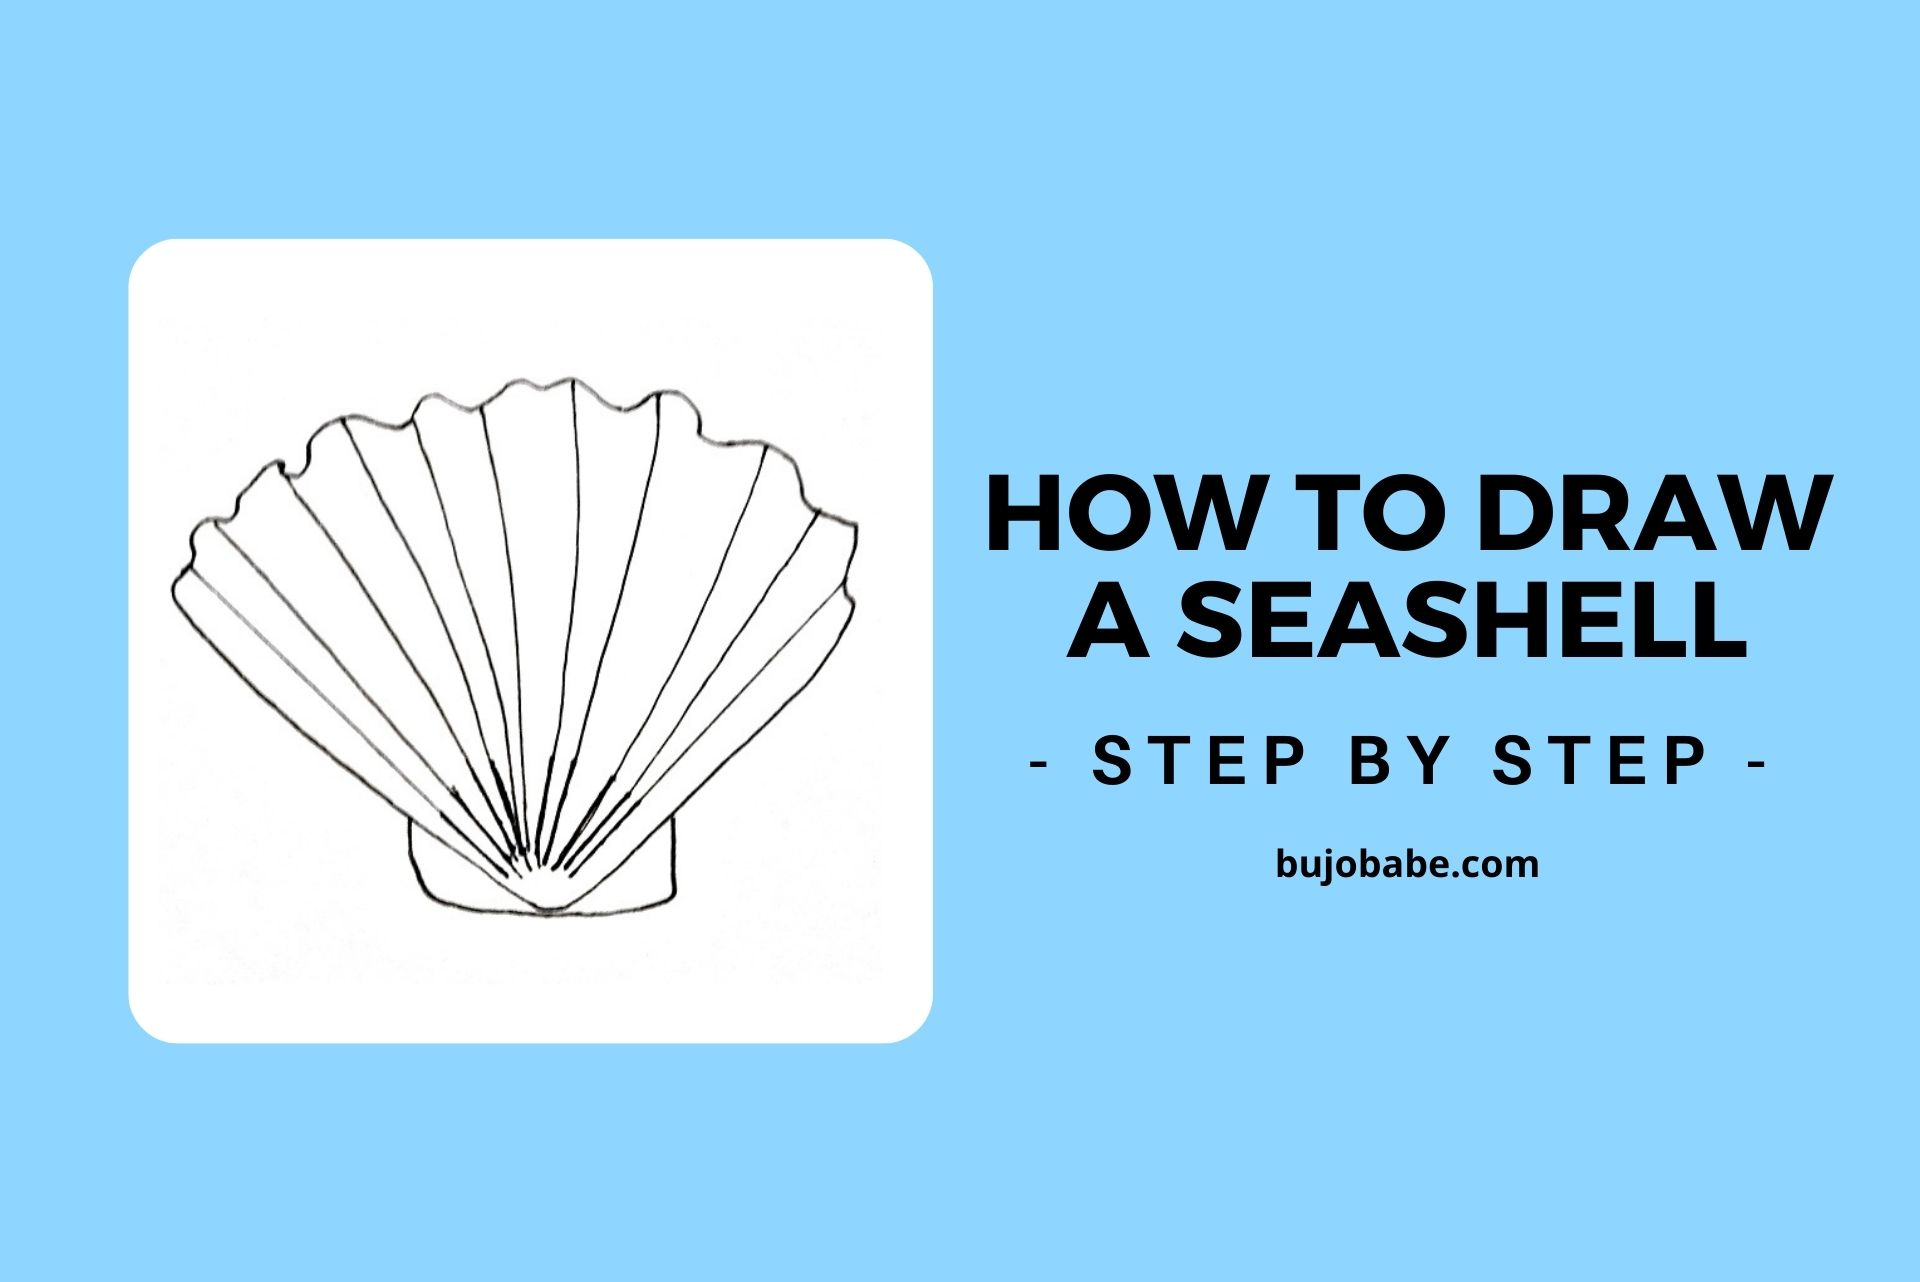 how to draw a seashell step by step